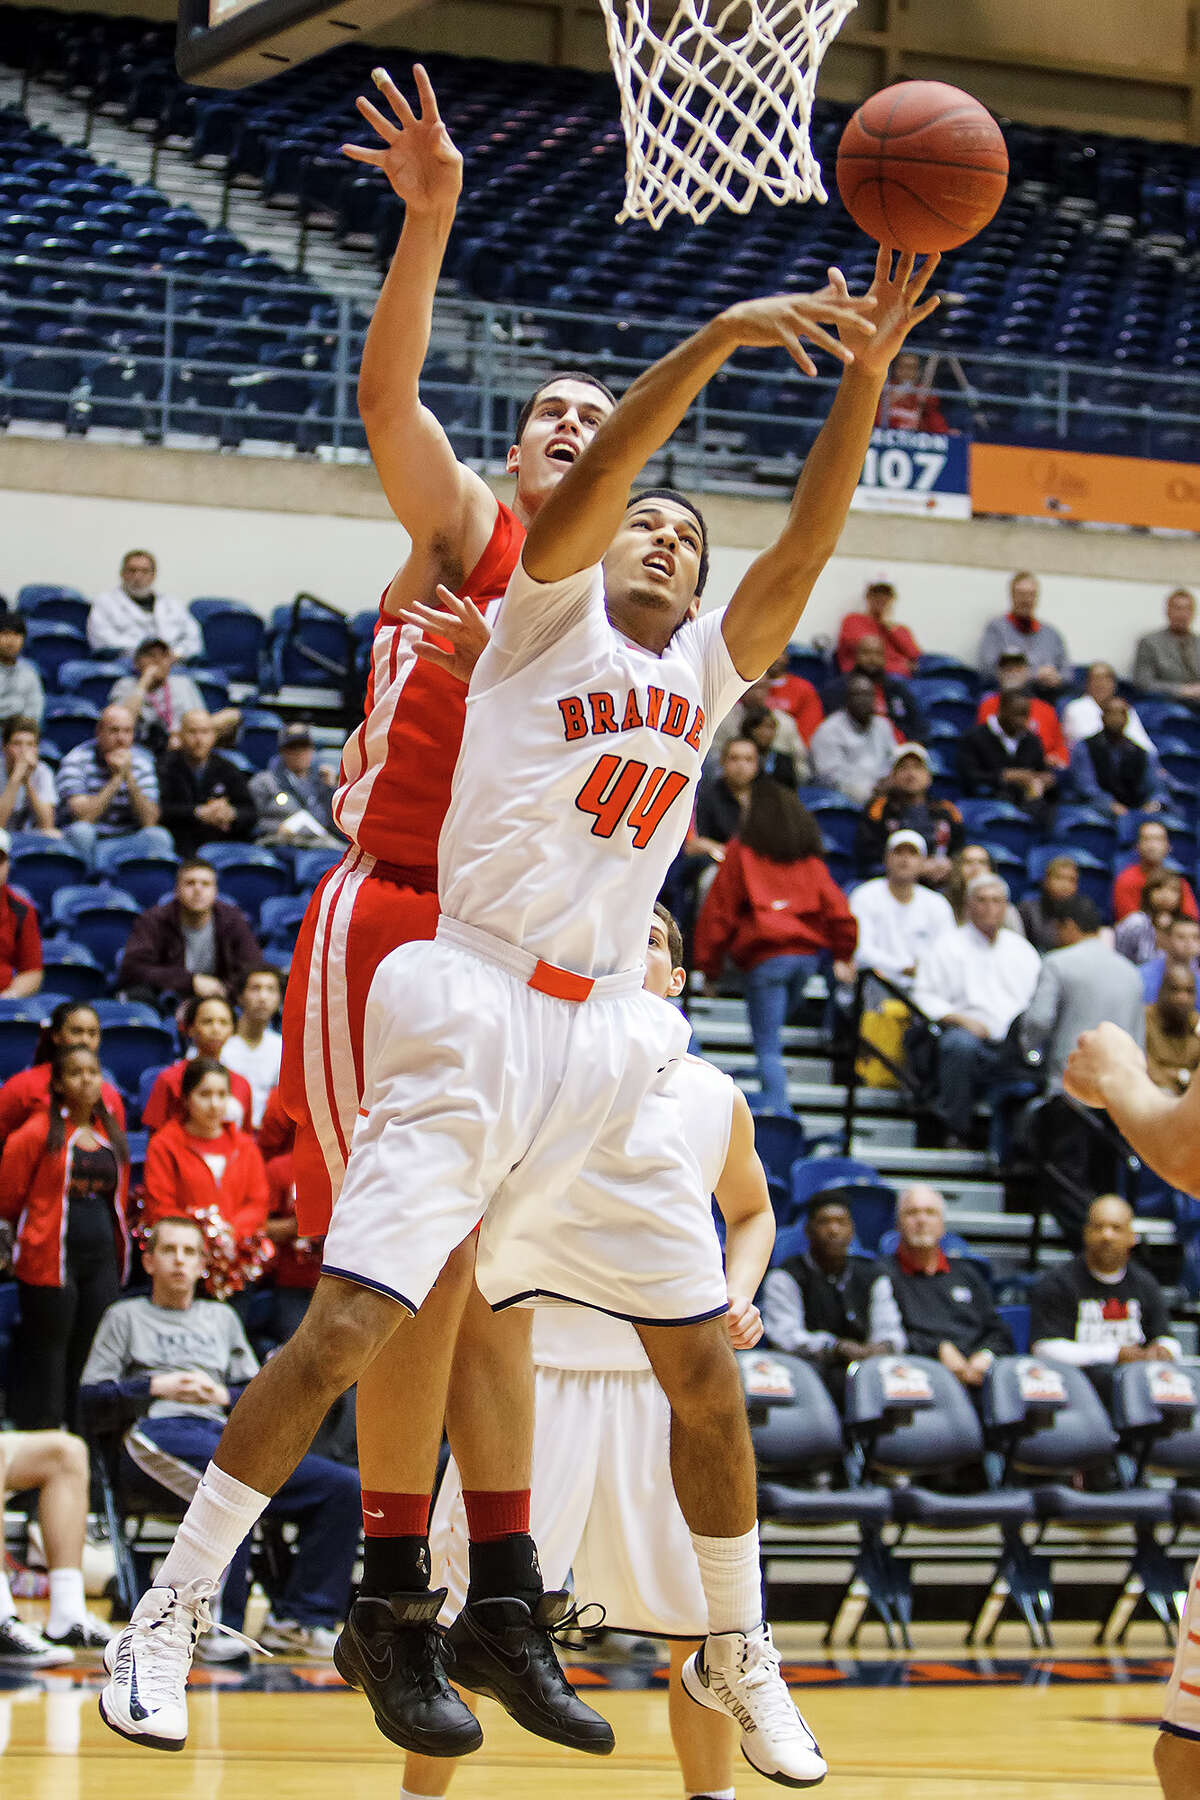 Brandeis' Jonathan Robinson (right) battles Judson's David Wacker for a rebound during the first half of their Class 5A boys basketball third round game at the UTSA Convocation Center on Tuesday, Feb. 26, 2013. Brandeis won the game 60-53.